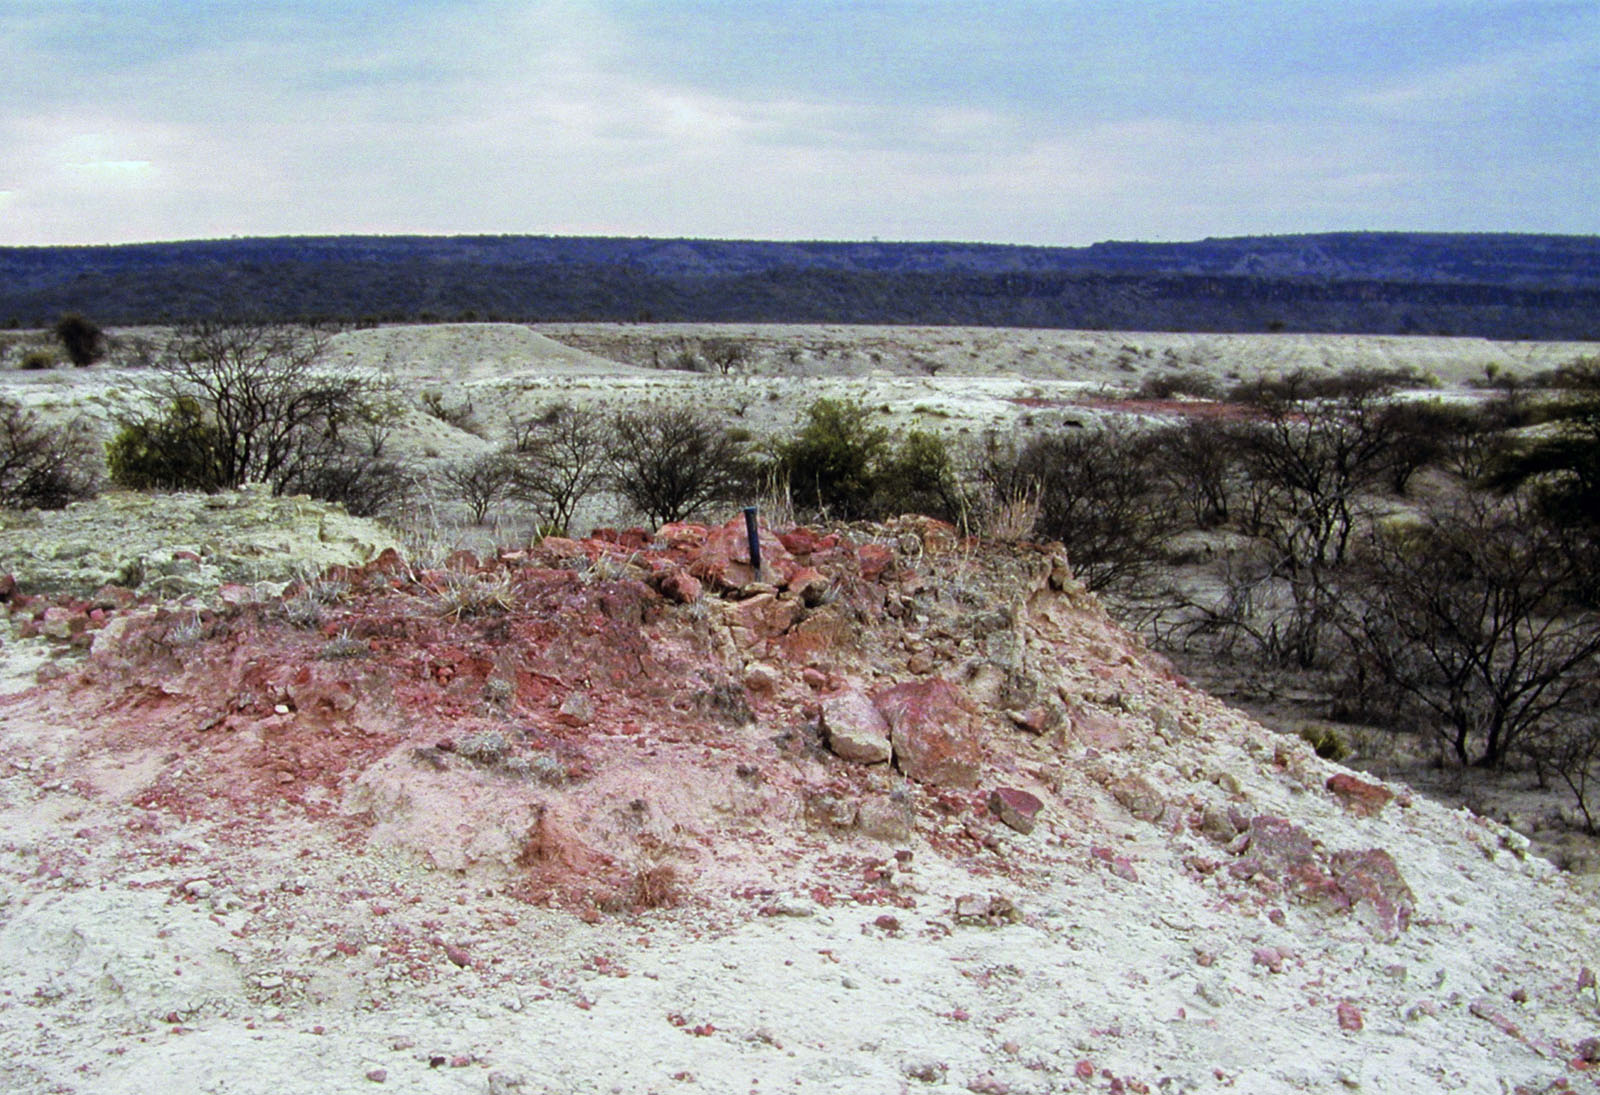 Reddened sediment reflects the burning of dessicated plant remains buried within diatomite sediment, indicating a severe climate shift between wet and very dry. Image courtesy of Richard Potts, Smithsonian Institution.